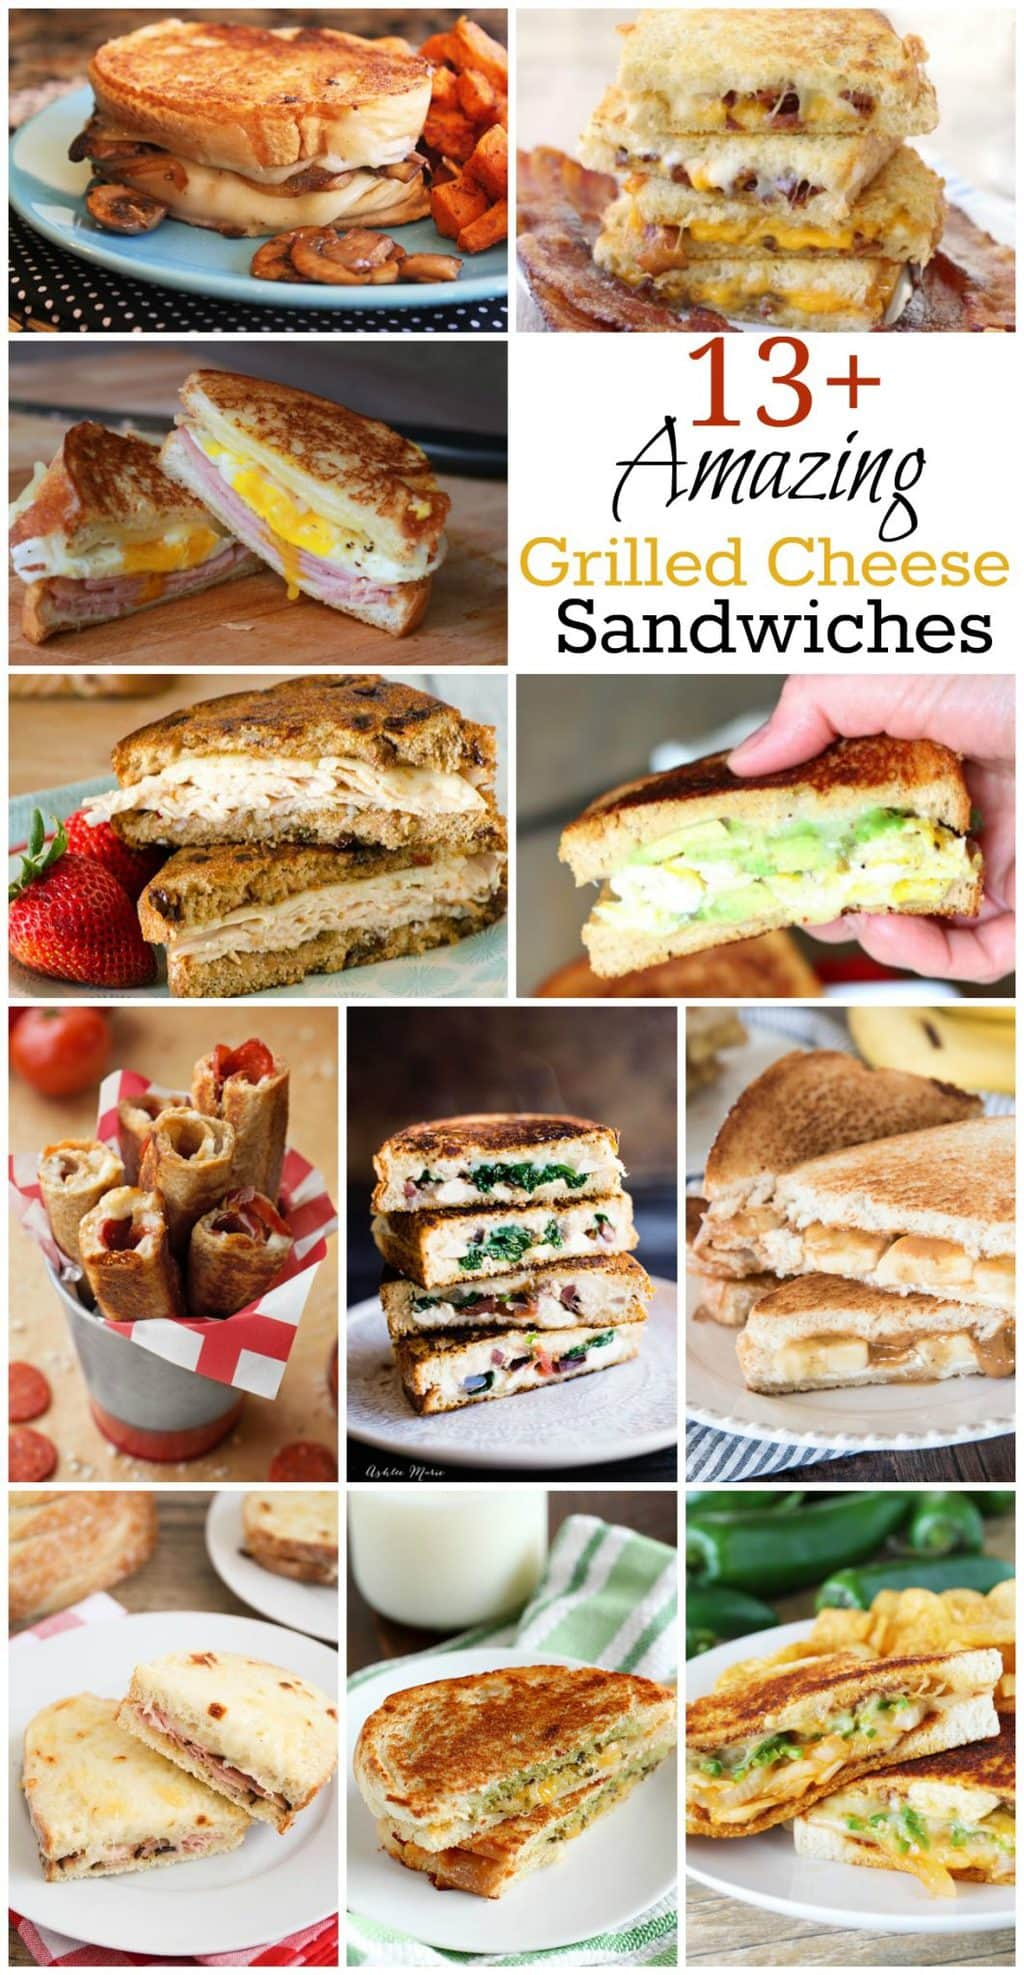 Amazing Grilled Cheese Sandwiches